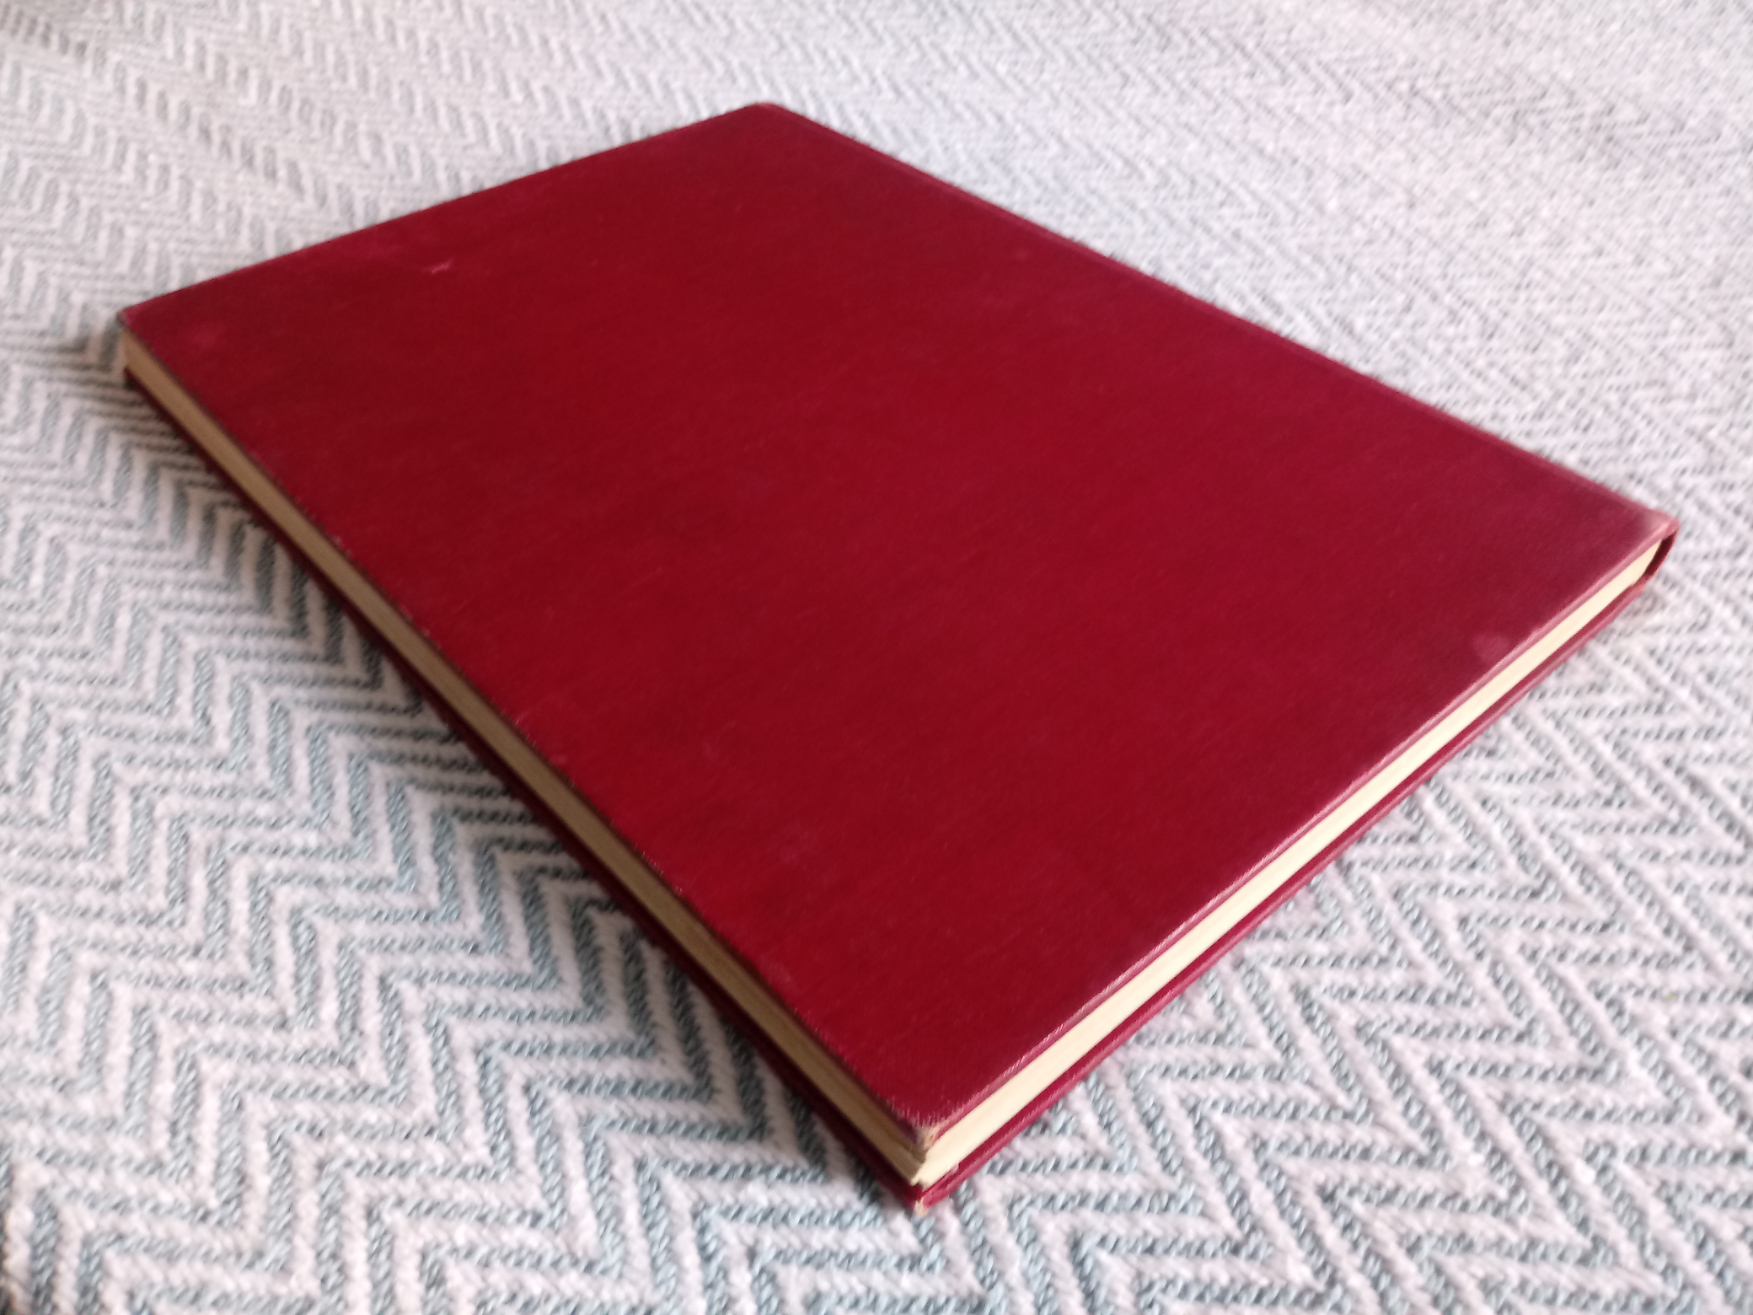 2 x hardback books published Odhams Press 1- The Coronation Of King George VI And Queen Elizabeth - Image 6 of 7